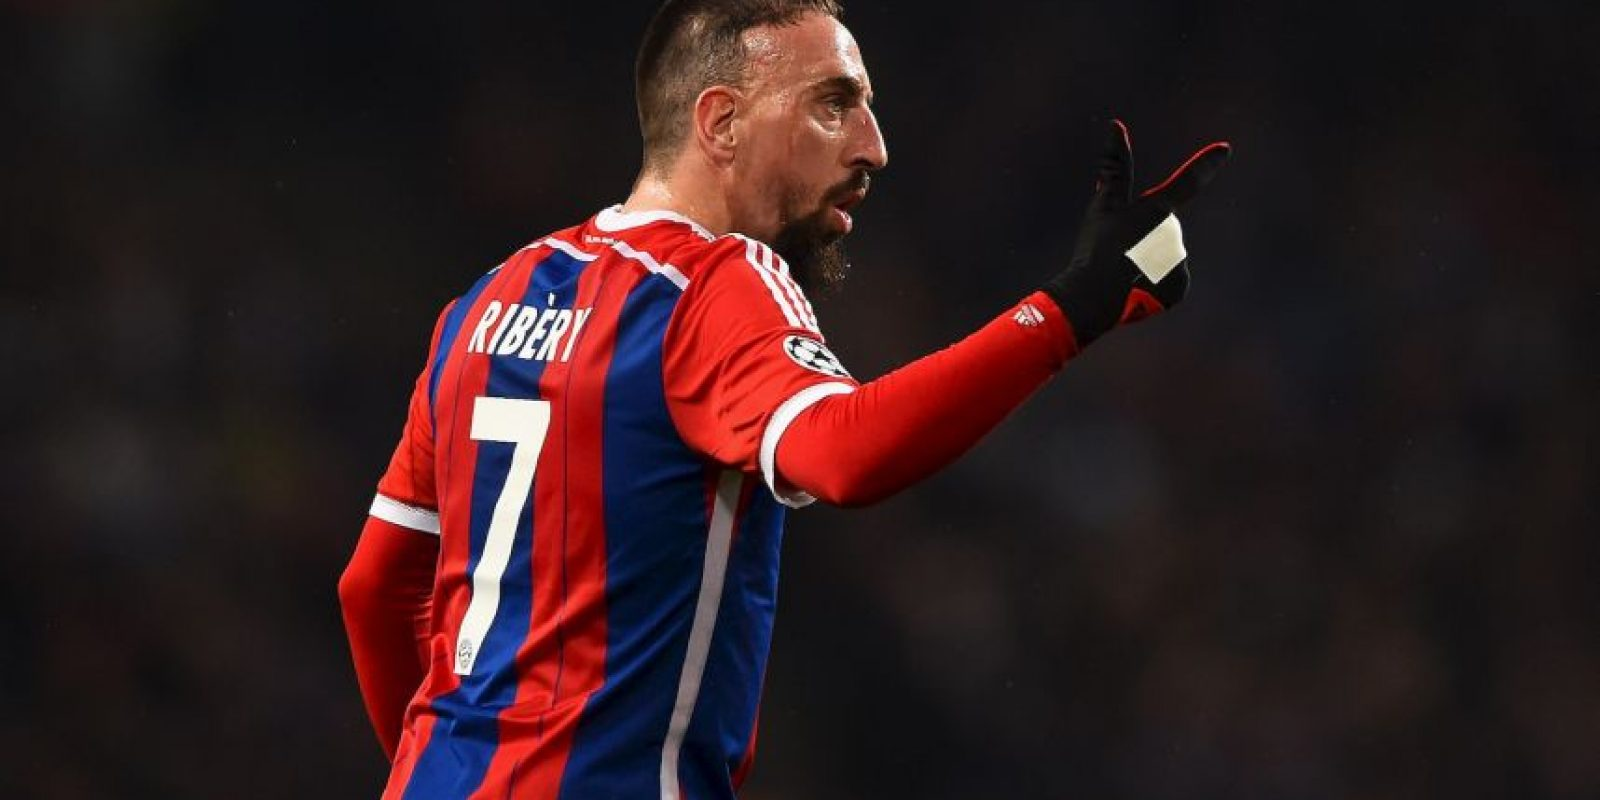 Frack Ribéry Foto: Getty